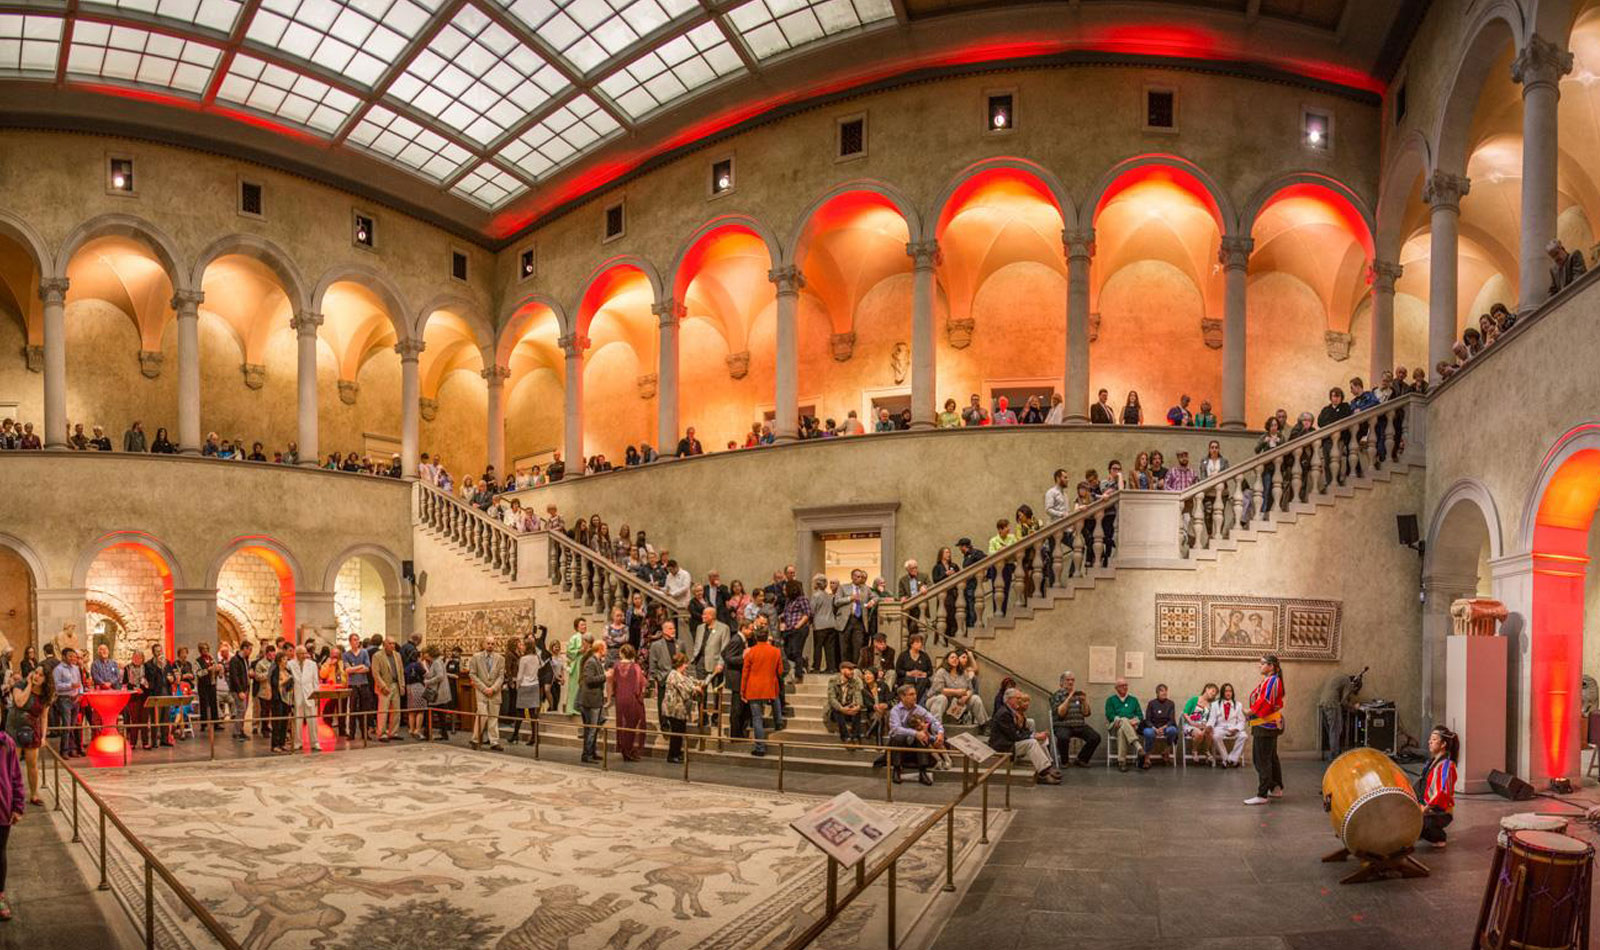 Culture enriches community. - We want culture to elevate the quality of life and well-being of all communities in Massachusetts.Photo credit: Worcester Art Museum, Worcester